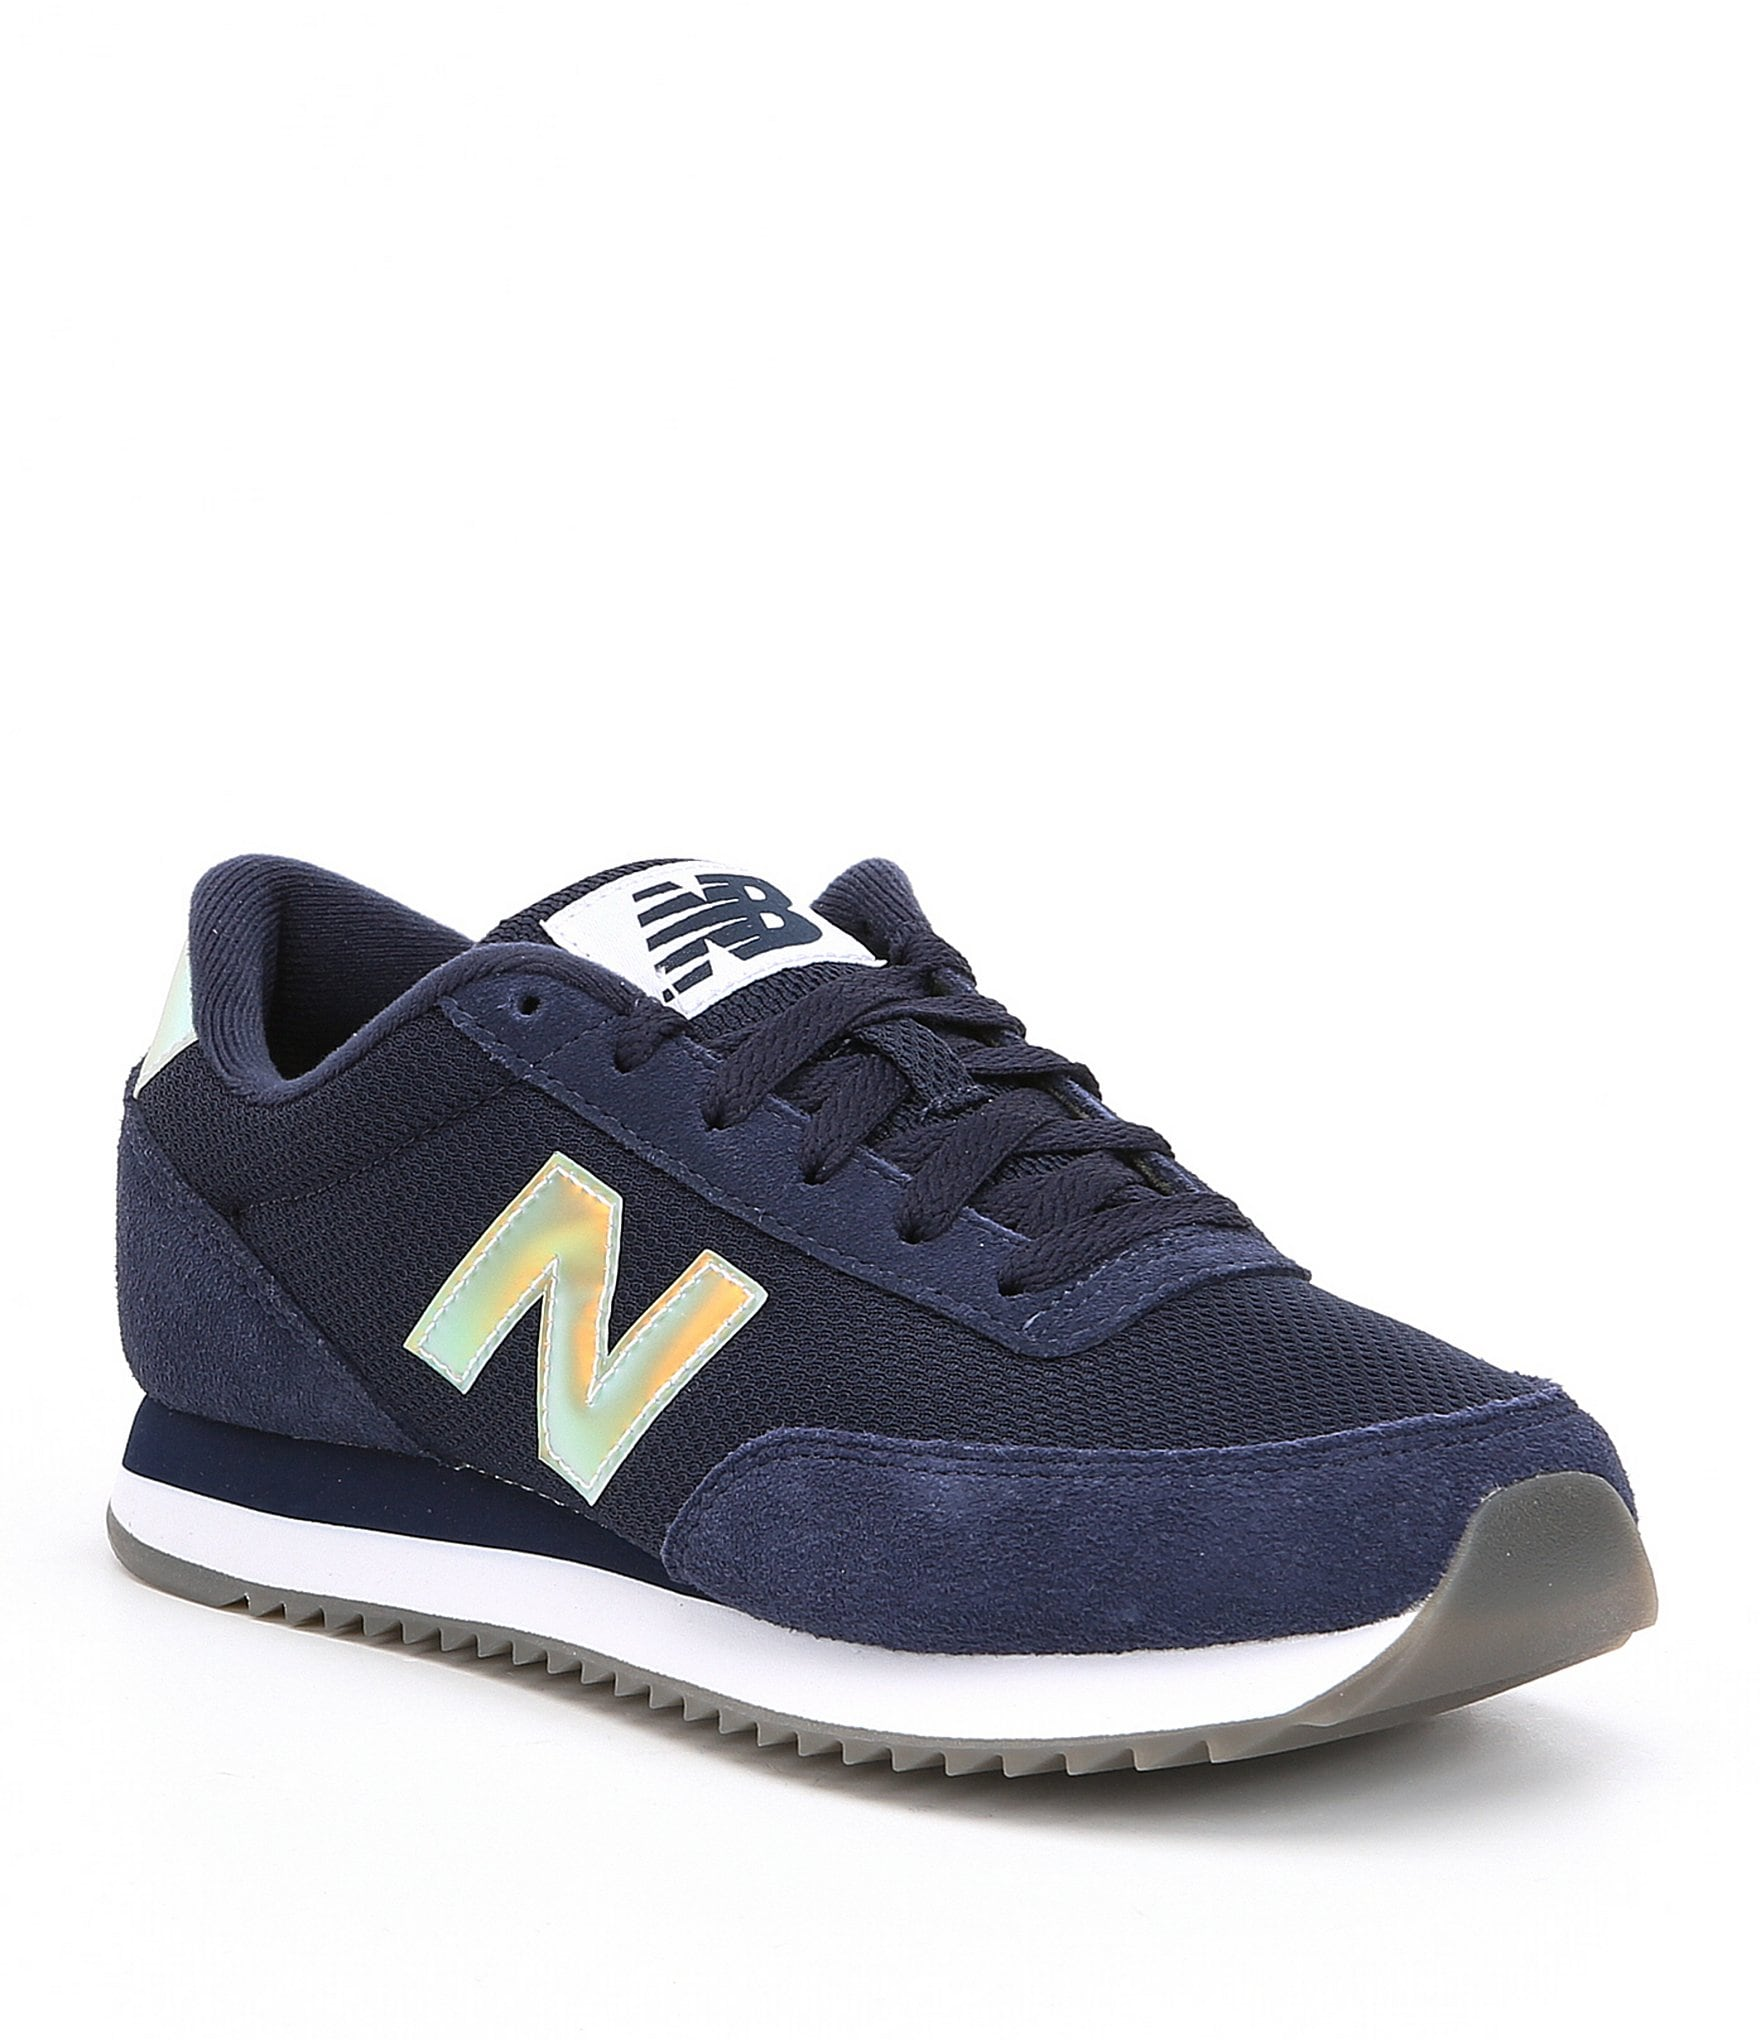 new balance running shoes for kids new balance shoes for women 577